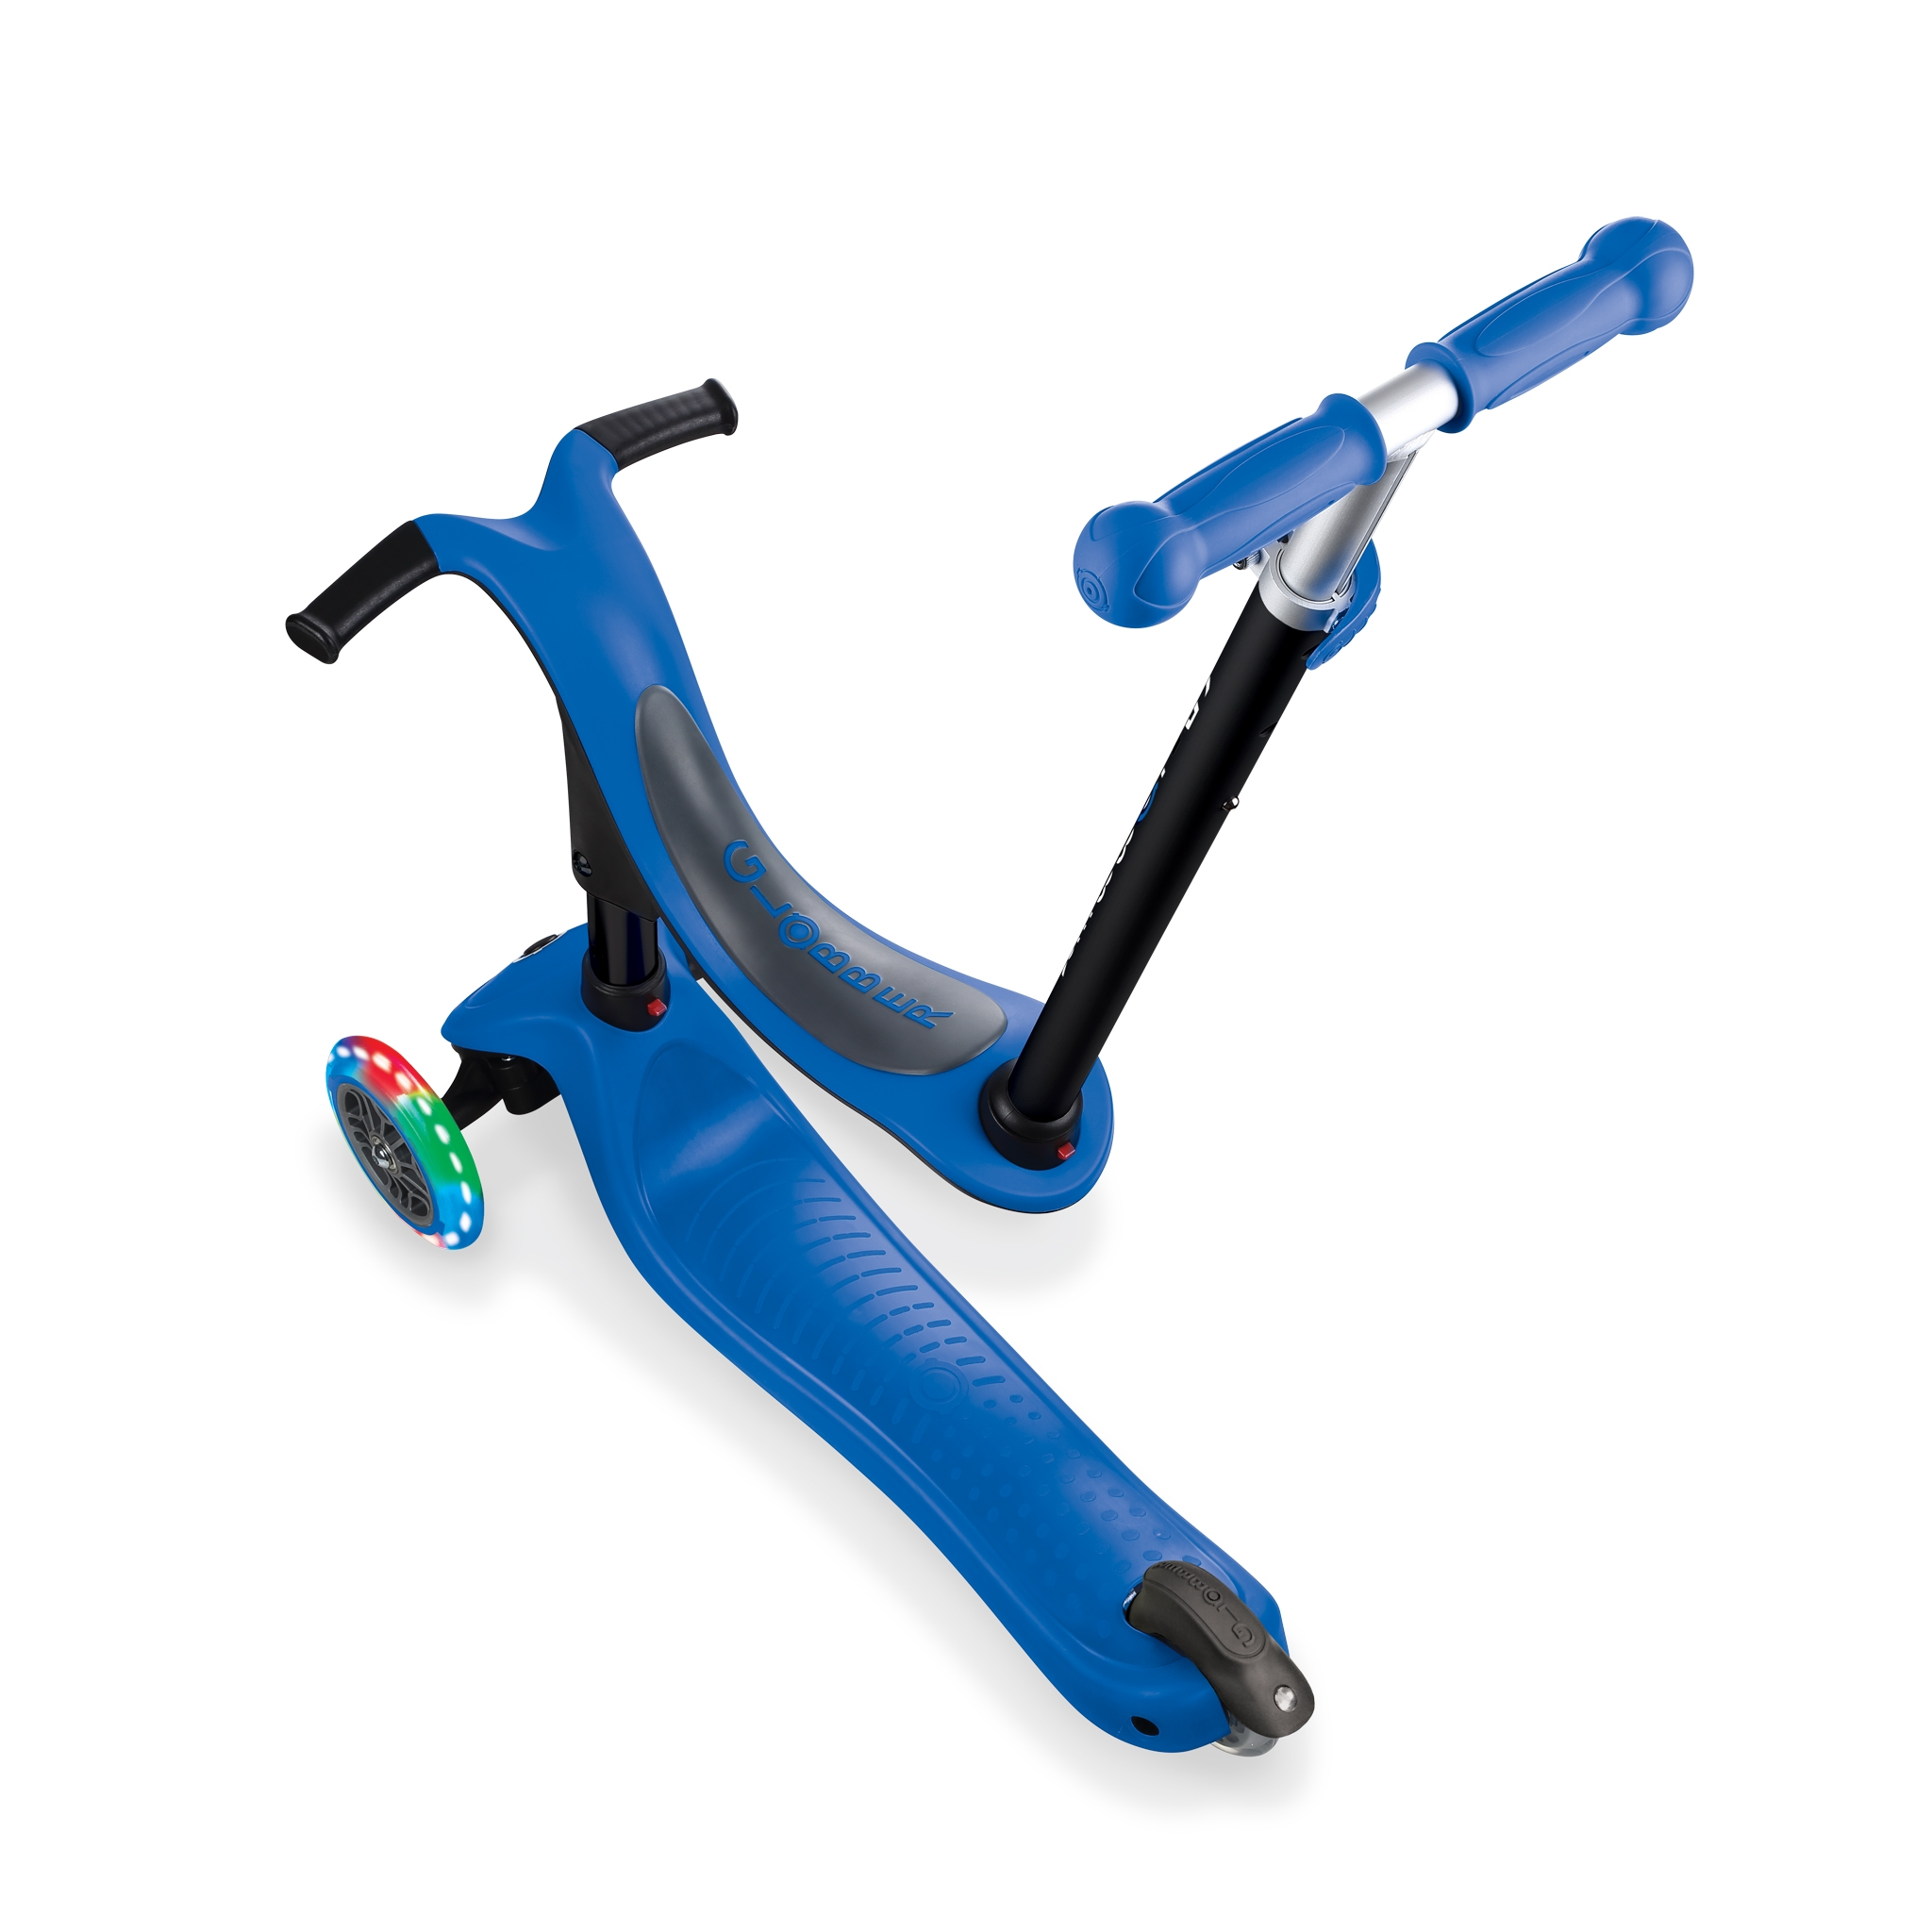 GO-UP-SPORTY-LIGHTS-ride-on-walking-bike-scooter-screwless-design-navy-blue